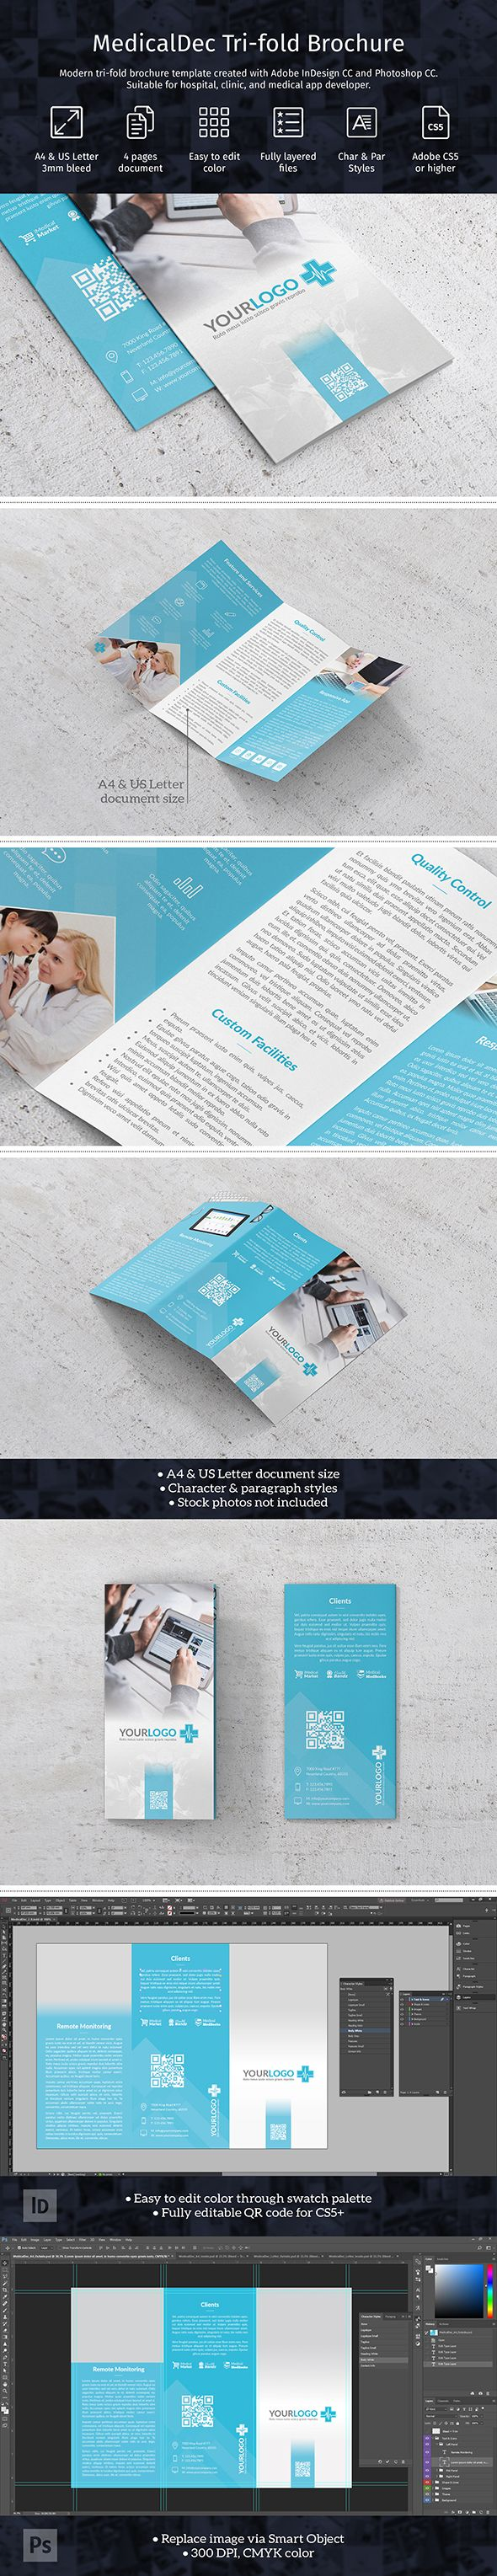 modern tri fold brochure template in a4 and us letter size created with adobe indesign cc and photoshop cc suitable for hospital clinic and medical app